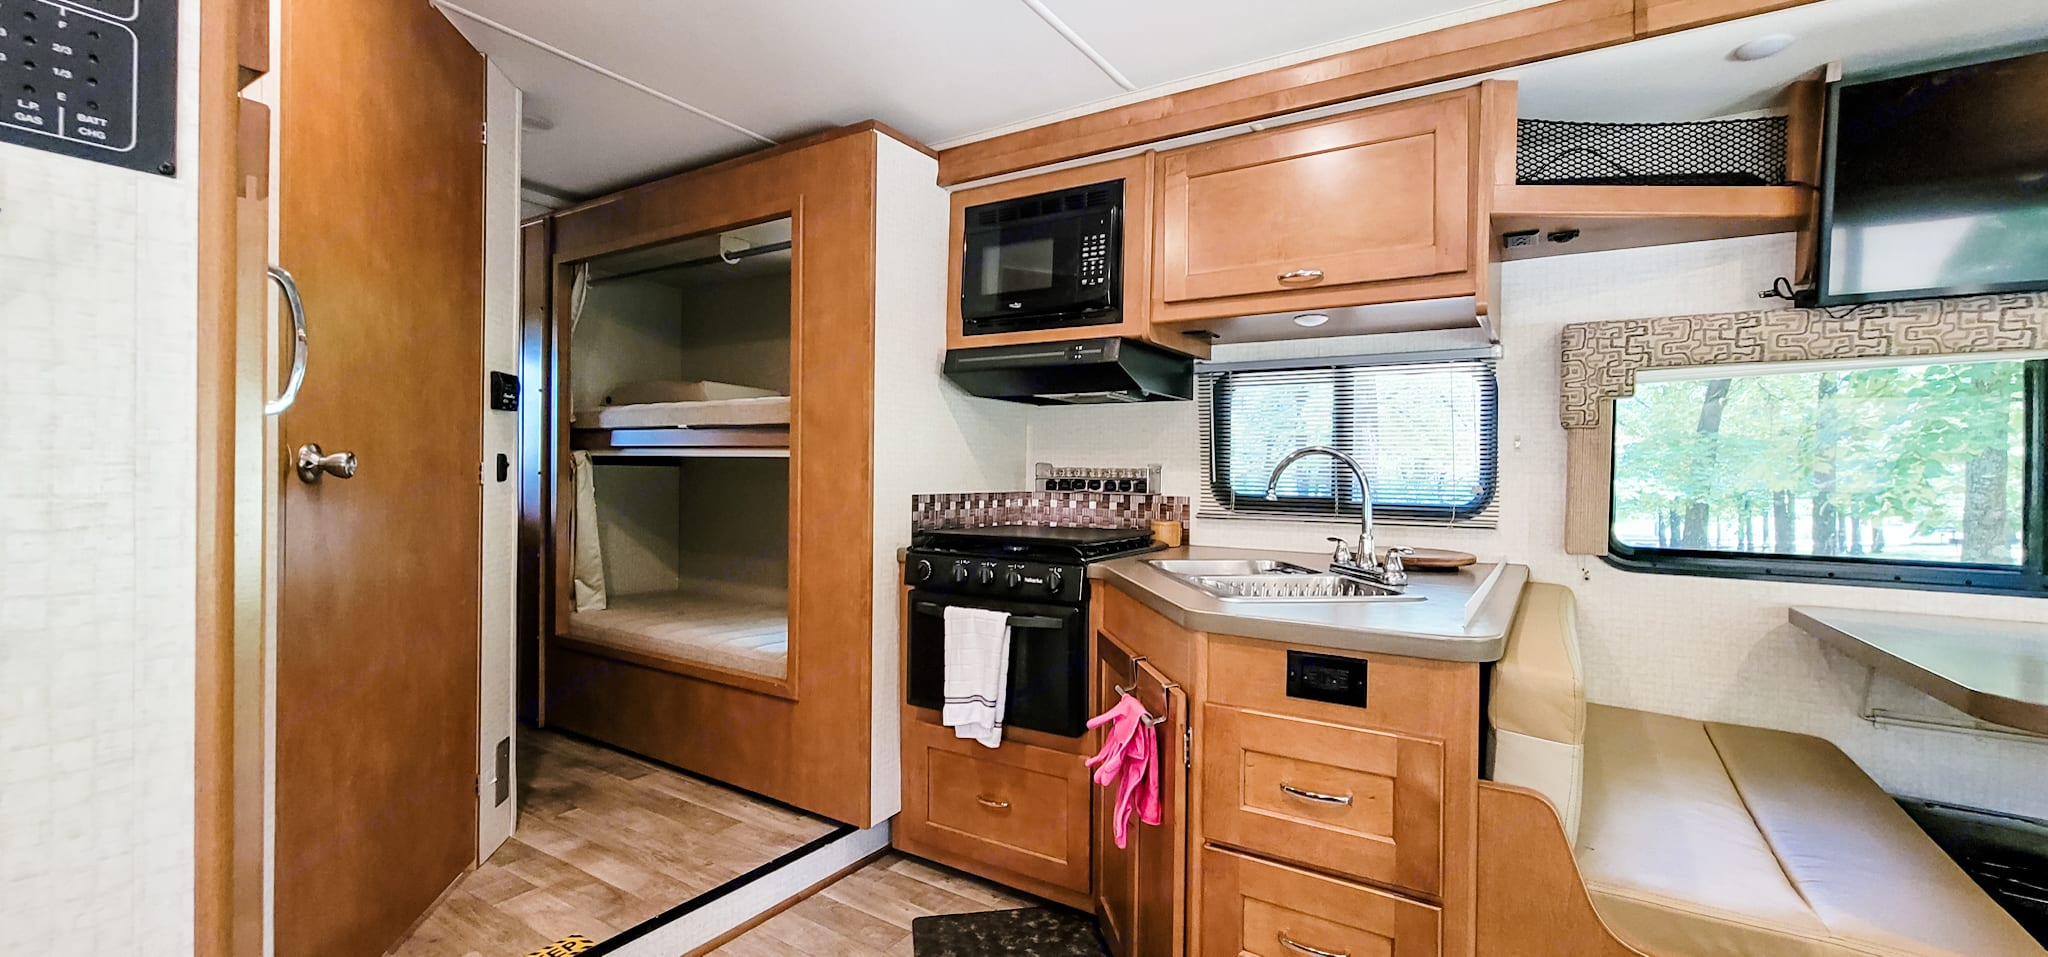 This kitchen has a two compartment sink, 3 burner stove, oven, and microwave.  Comes loaded with cookware, utensils, plates glasses and silverware.. Winnebago Minnie Winnie 2018